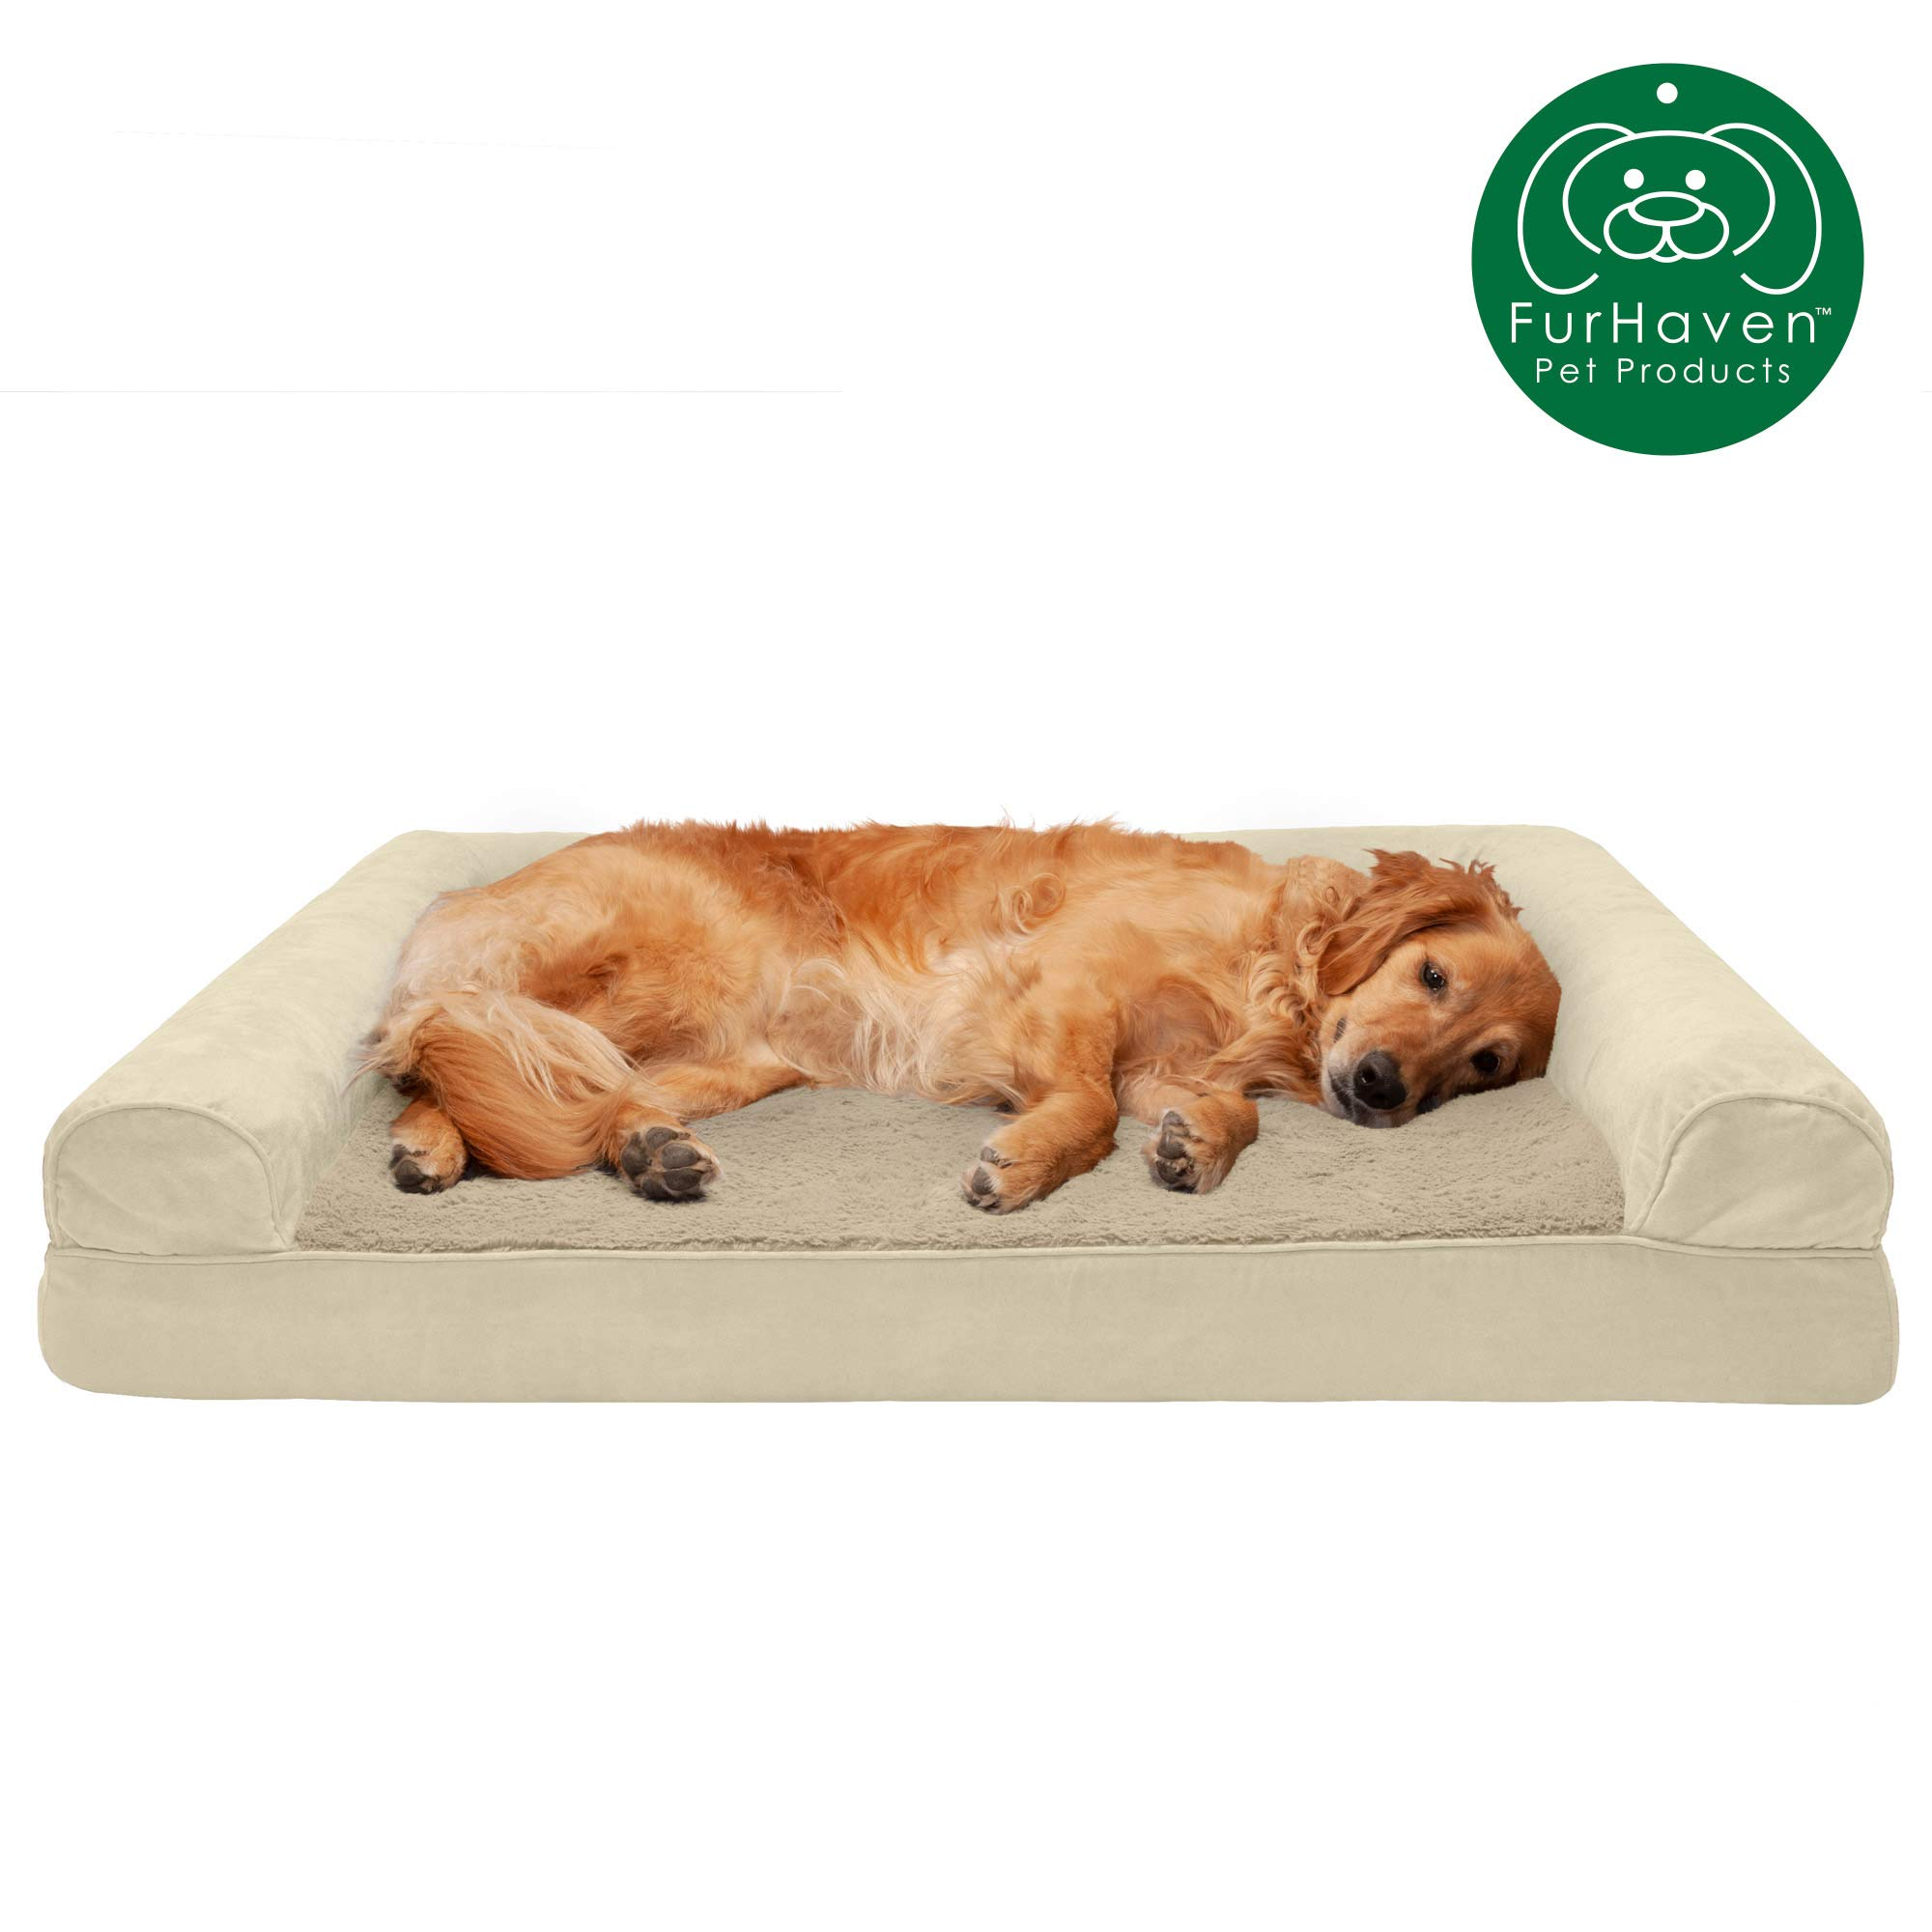 Furhaven Pet Dog Bed | Cooling Gel Memory Foam Ultra Plush Faux Fur & Suede Traditional Sofa-Style Living Room Couch Pet Bed w/ Removable Cover for Dogs & Cats, Clay, Jumbo by Furhaven